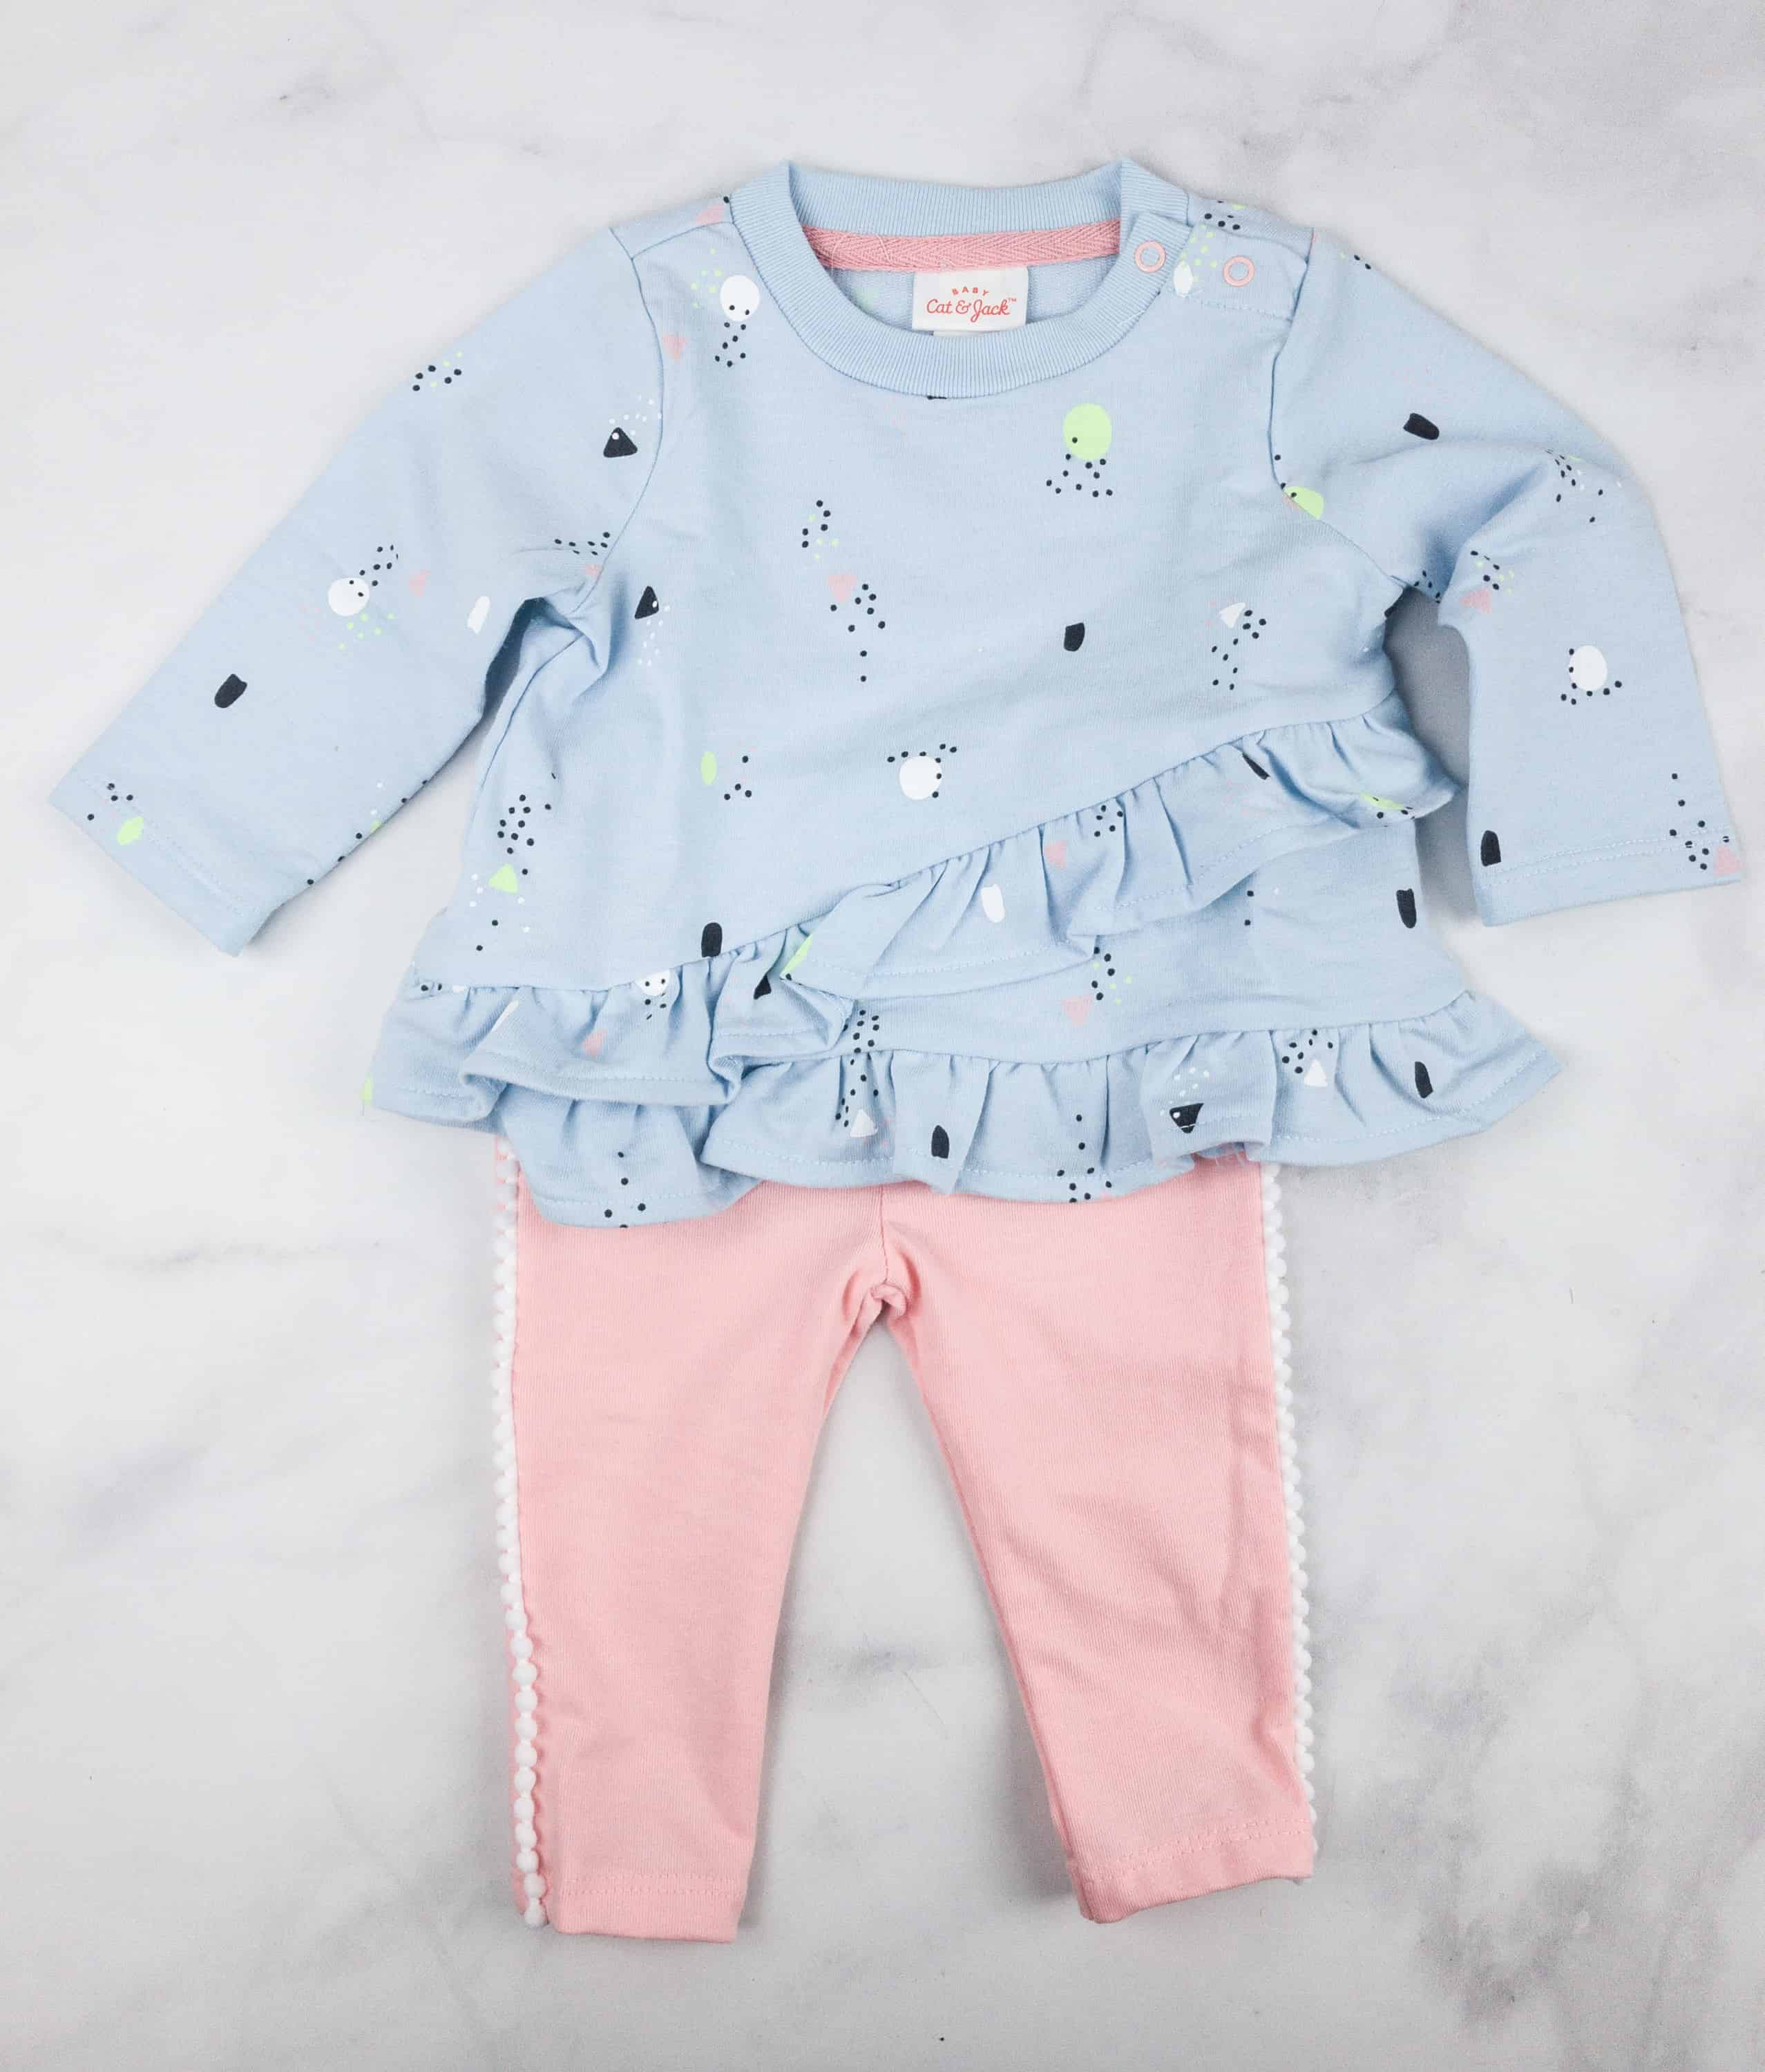 8fc9c4b62 Cat & Jack Baby Girls' Sweatshirt and Leggings Set (est $9.99)This pair is  composed of a long sleeved baby blue sweatshirt top and peach leggings.